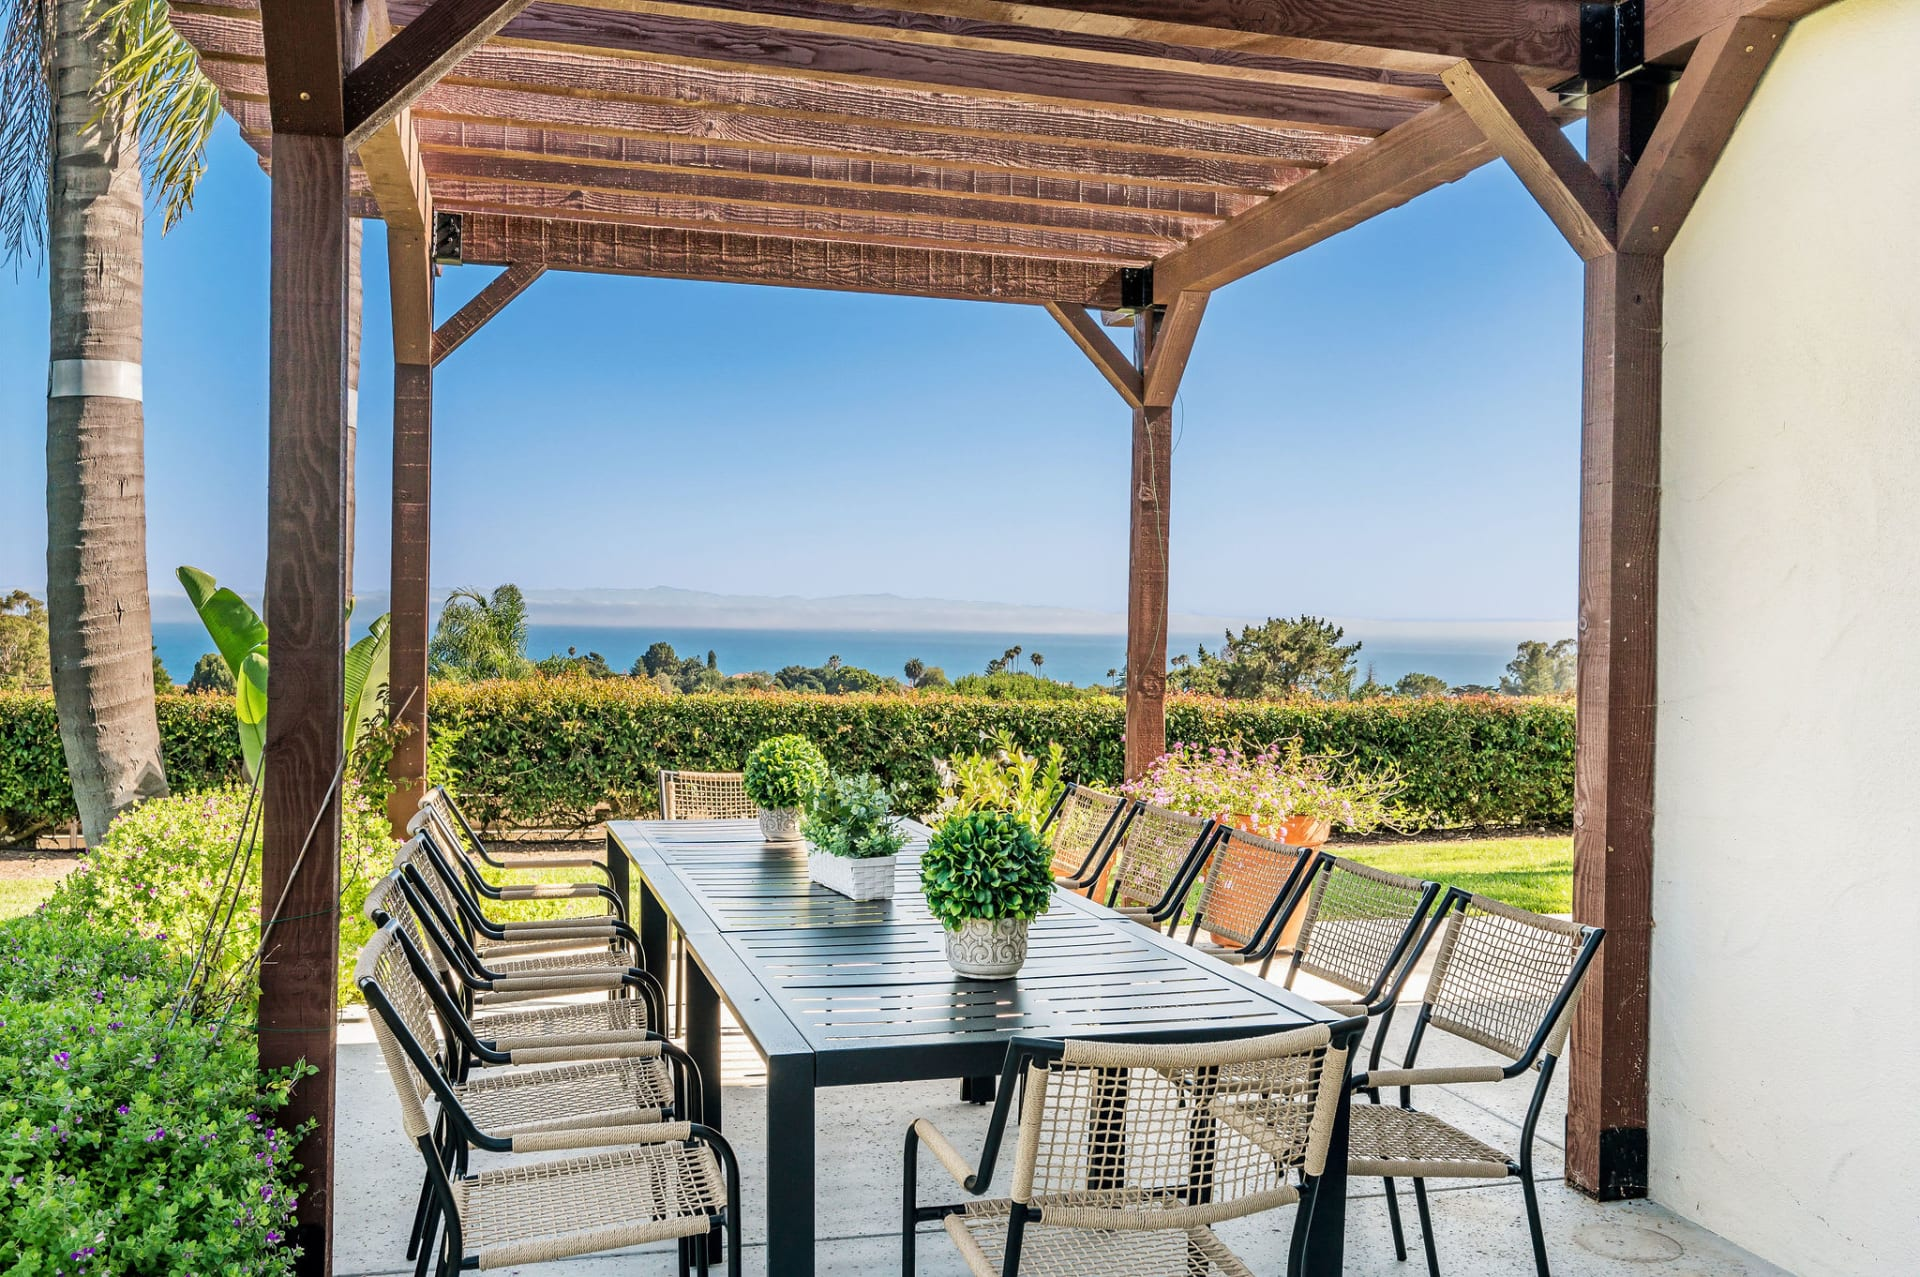 Renovate or Sell Your Montecito Home?